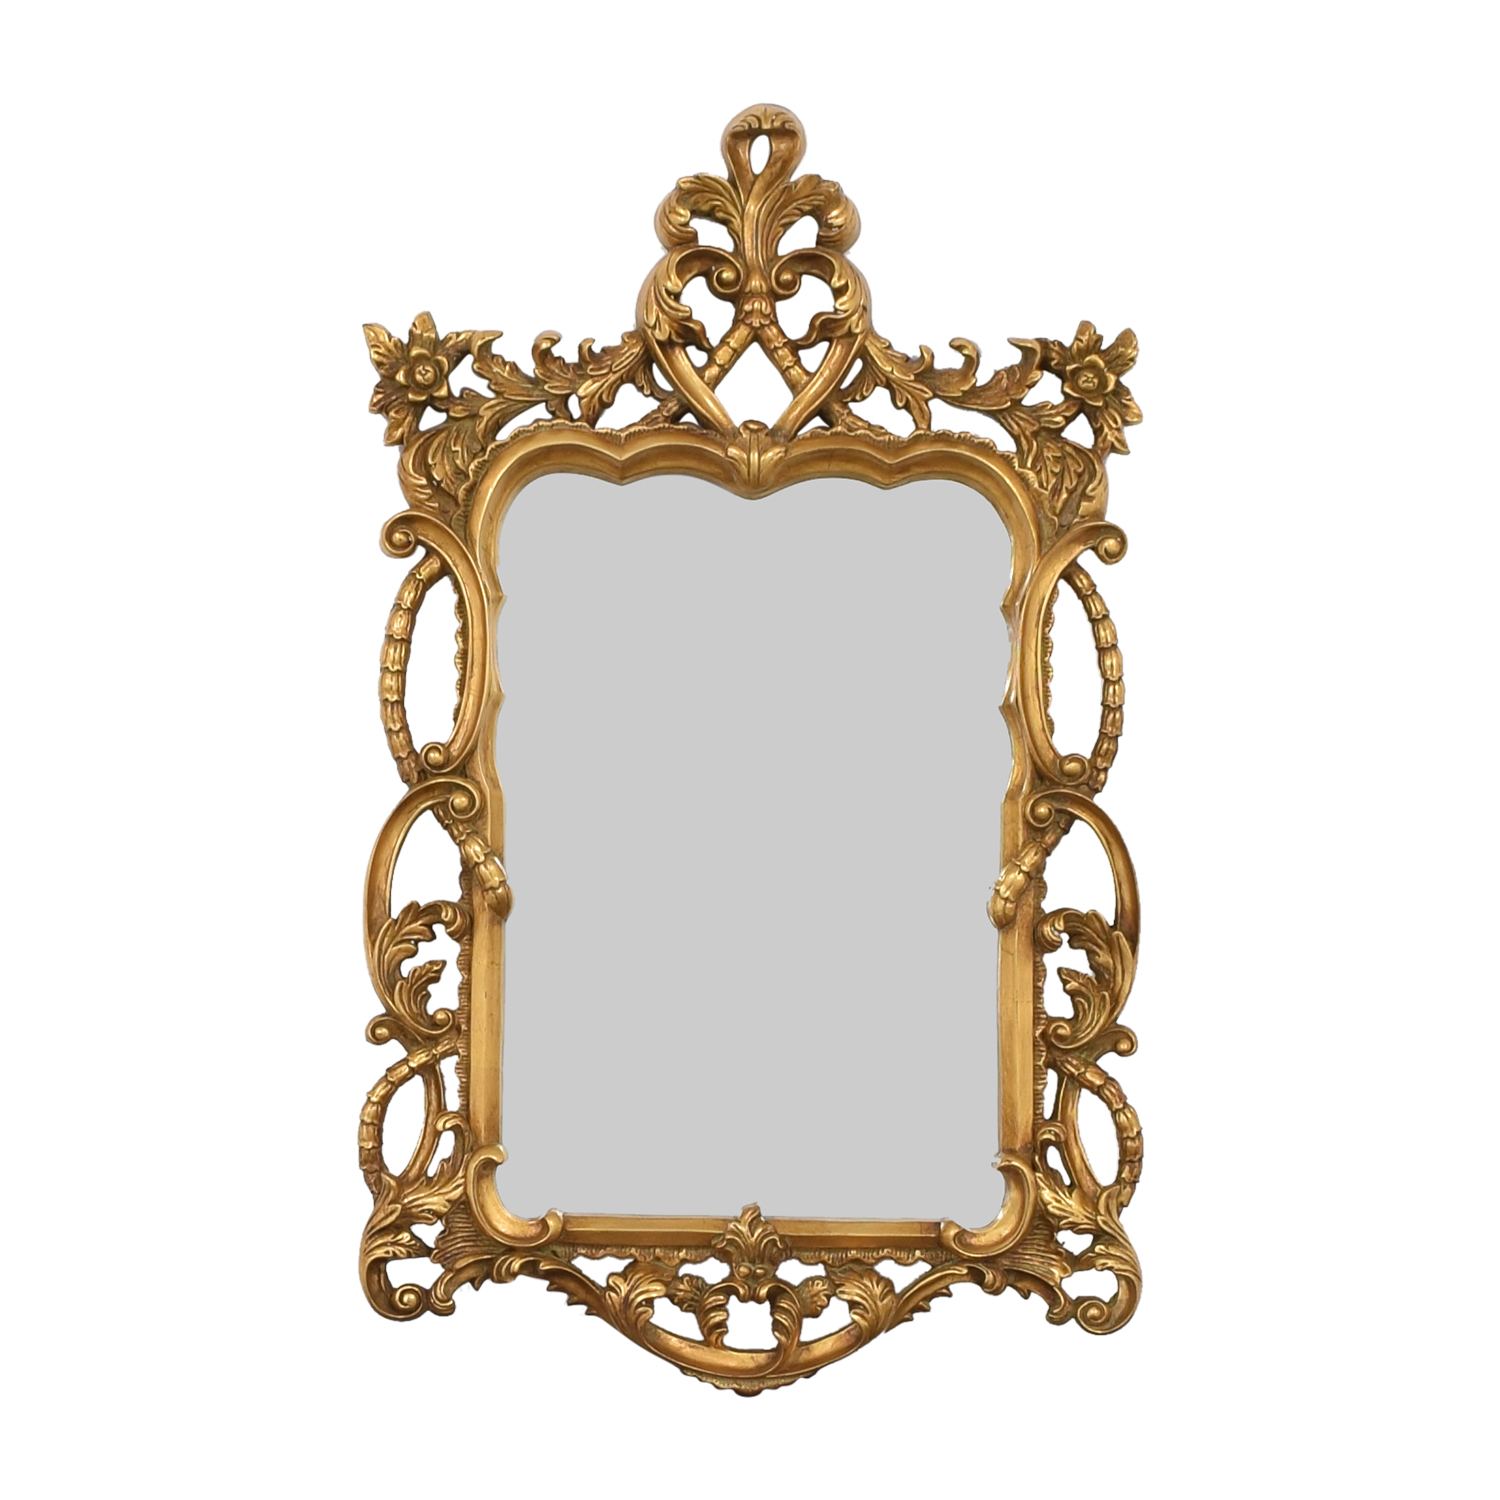 Horchow Horchow Sterling Industries Ornate Wall Mirror ct